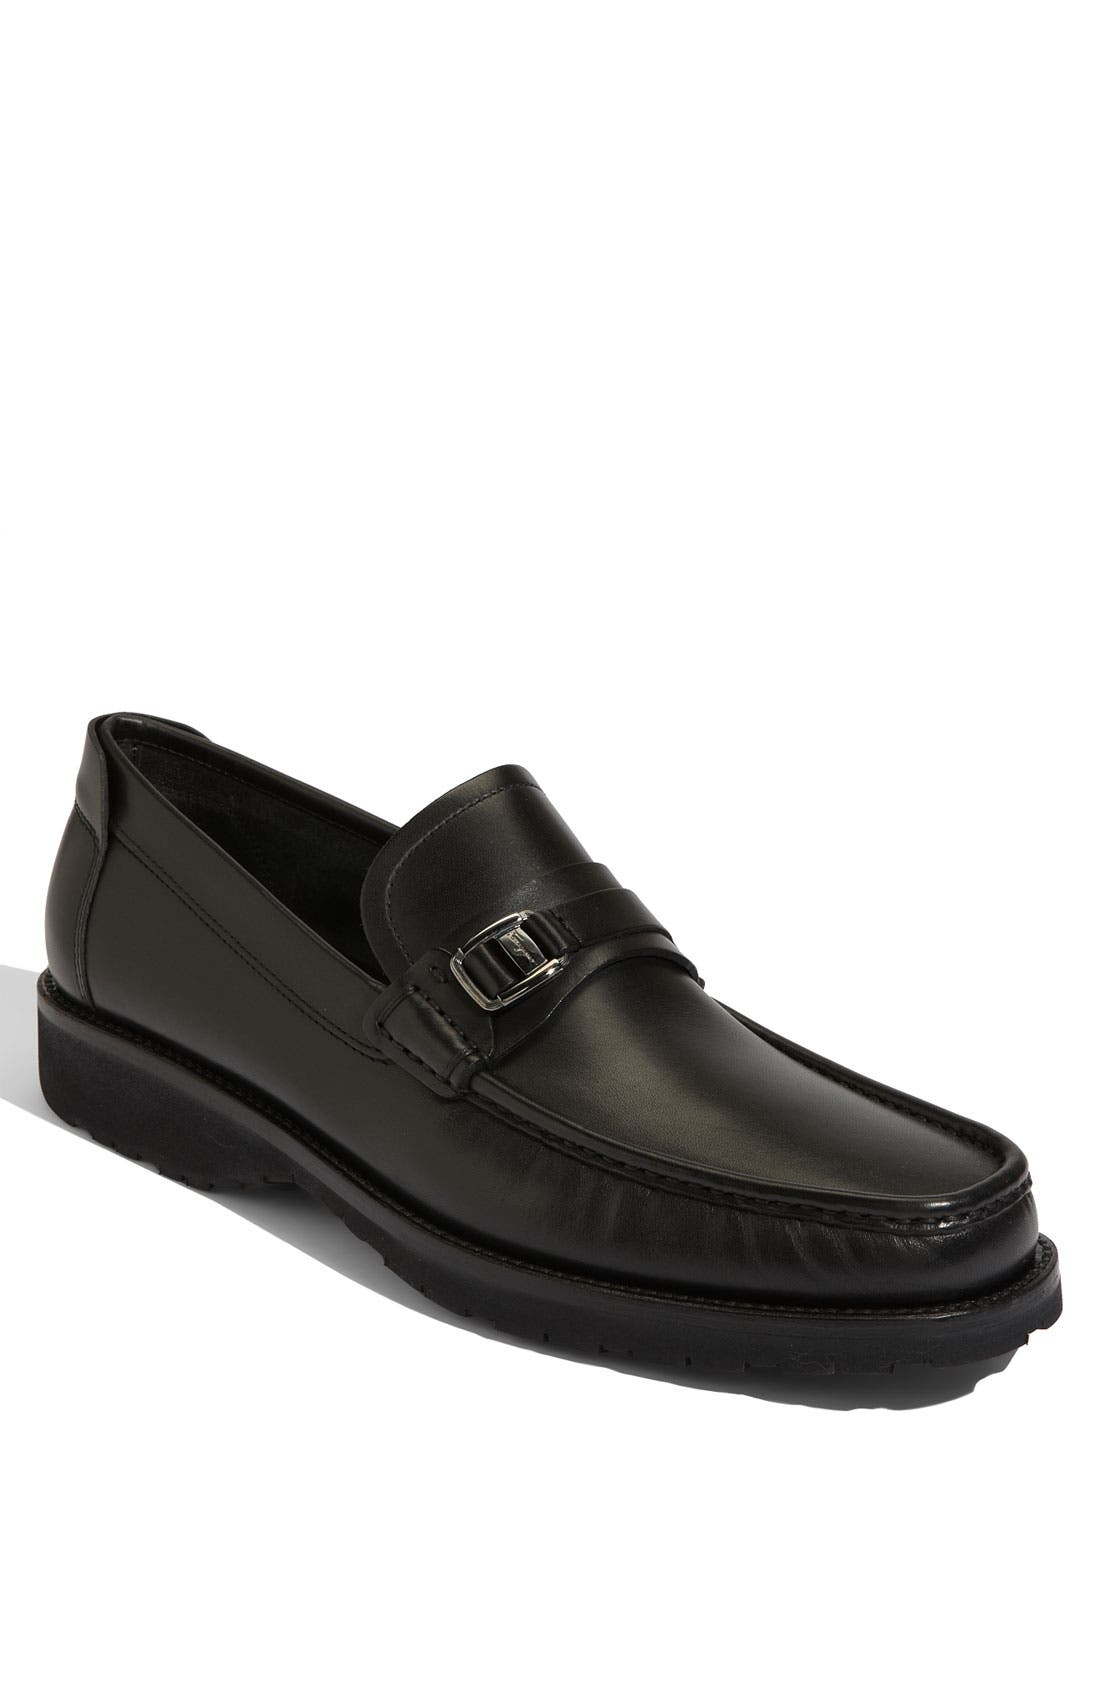 Alternate Image 1 Selected - Salvatore Ferragamo 'Fidenza' Loafer (Online Only)